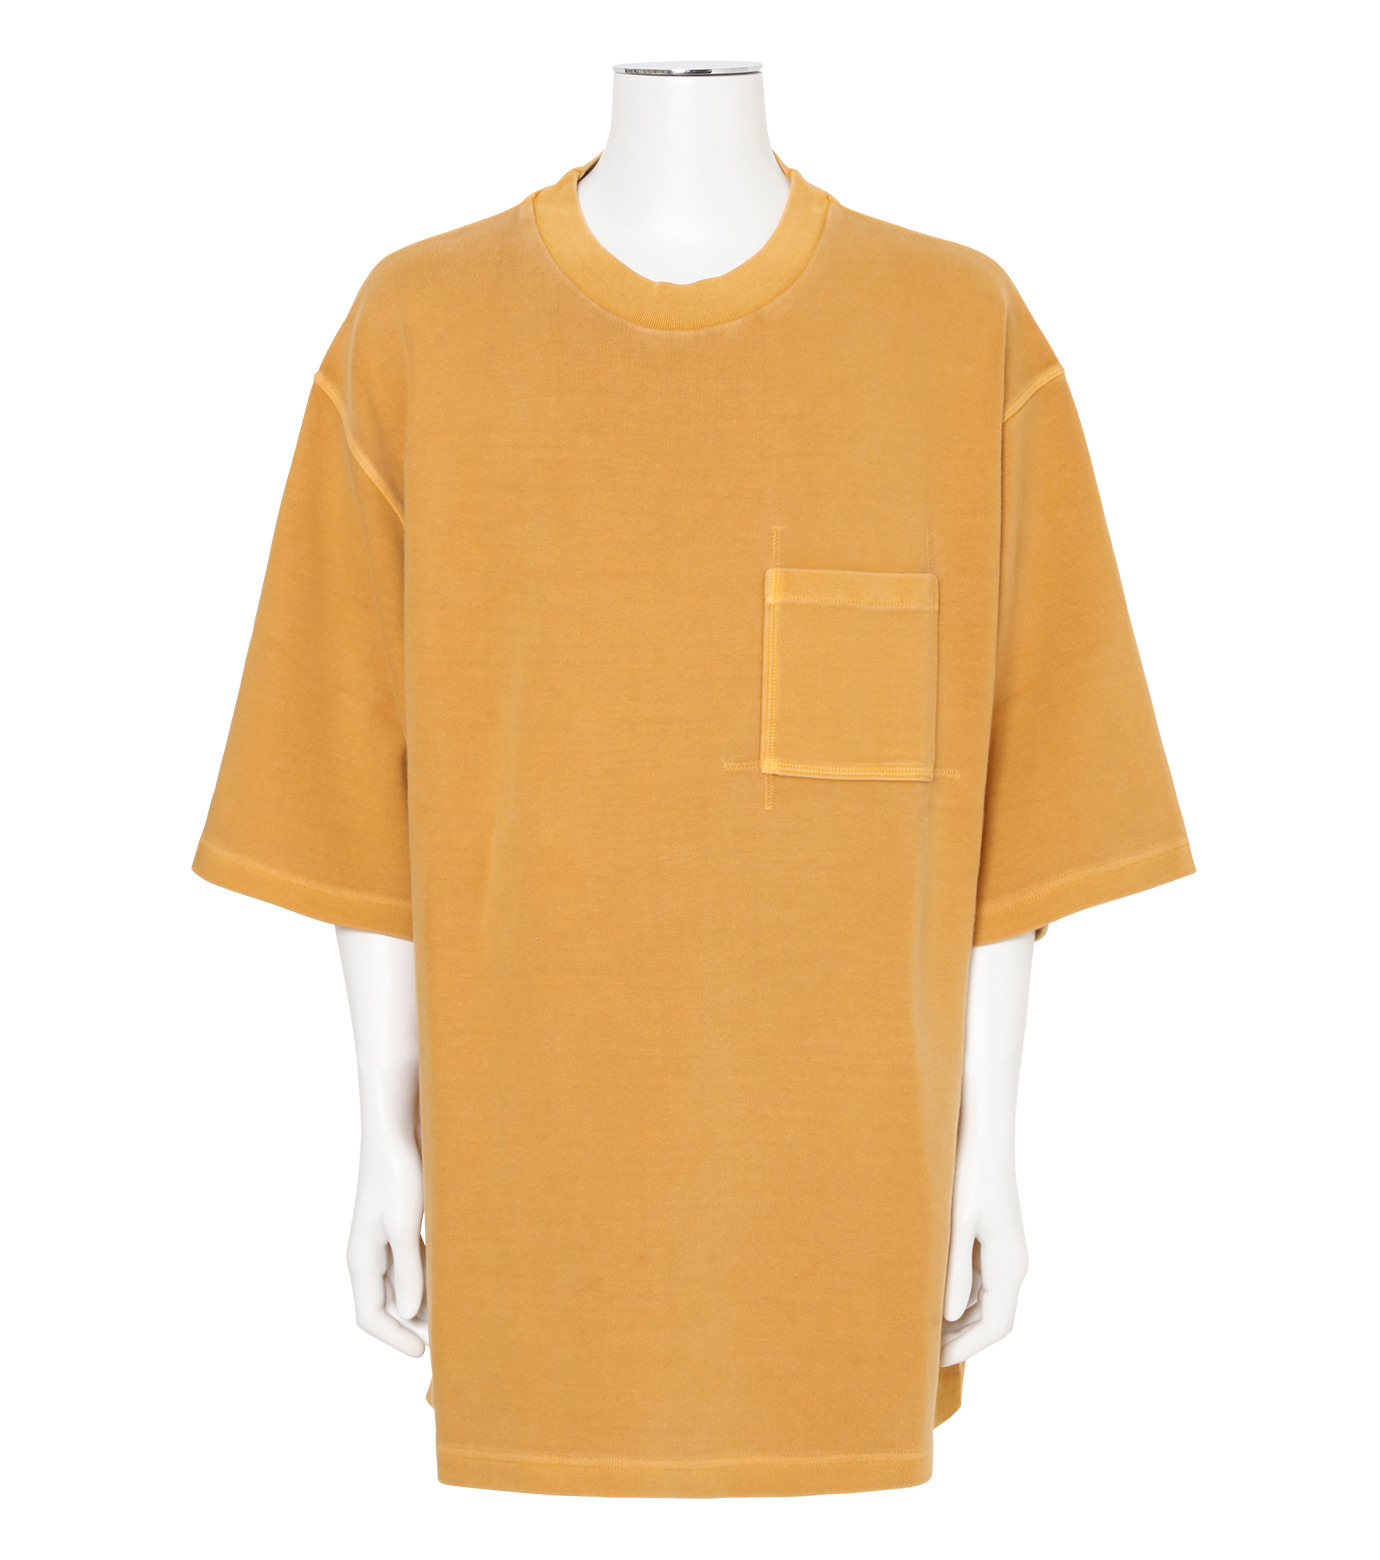 YEEZY(イージー)のRUGBY KNIT TEE-YELLOW(カットソー/cut and sewn)-KW3M106-105-32 拡大詳細画像1